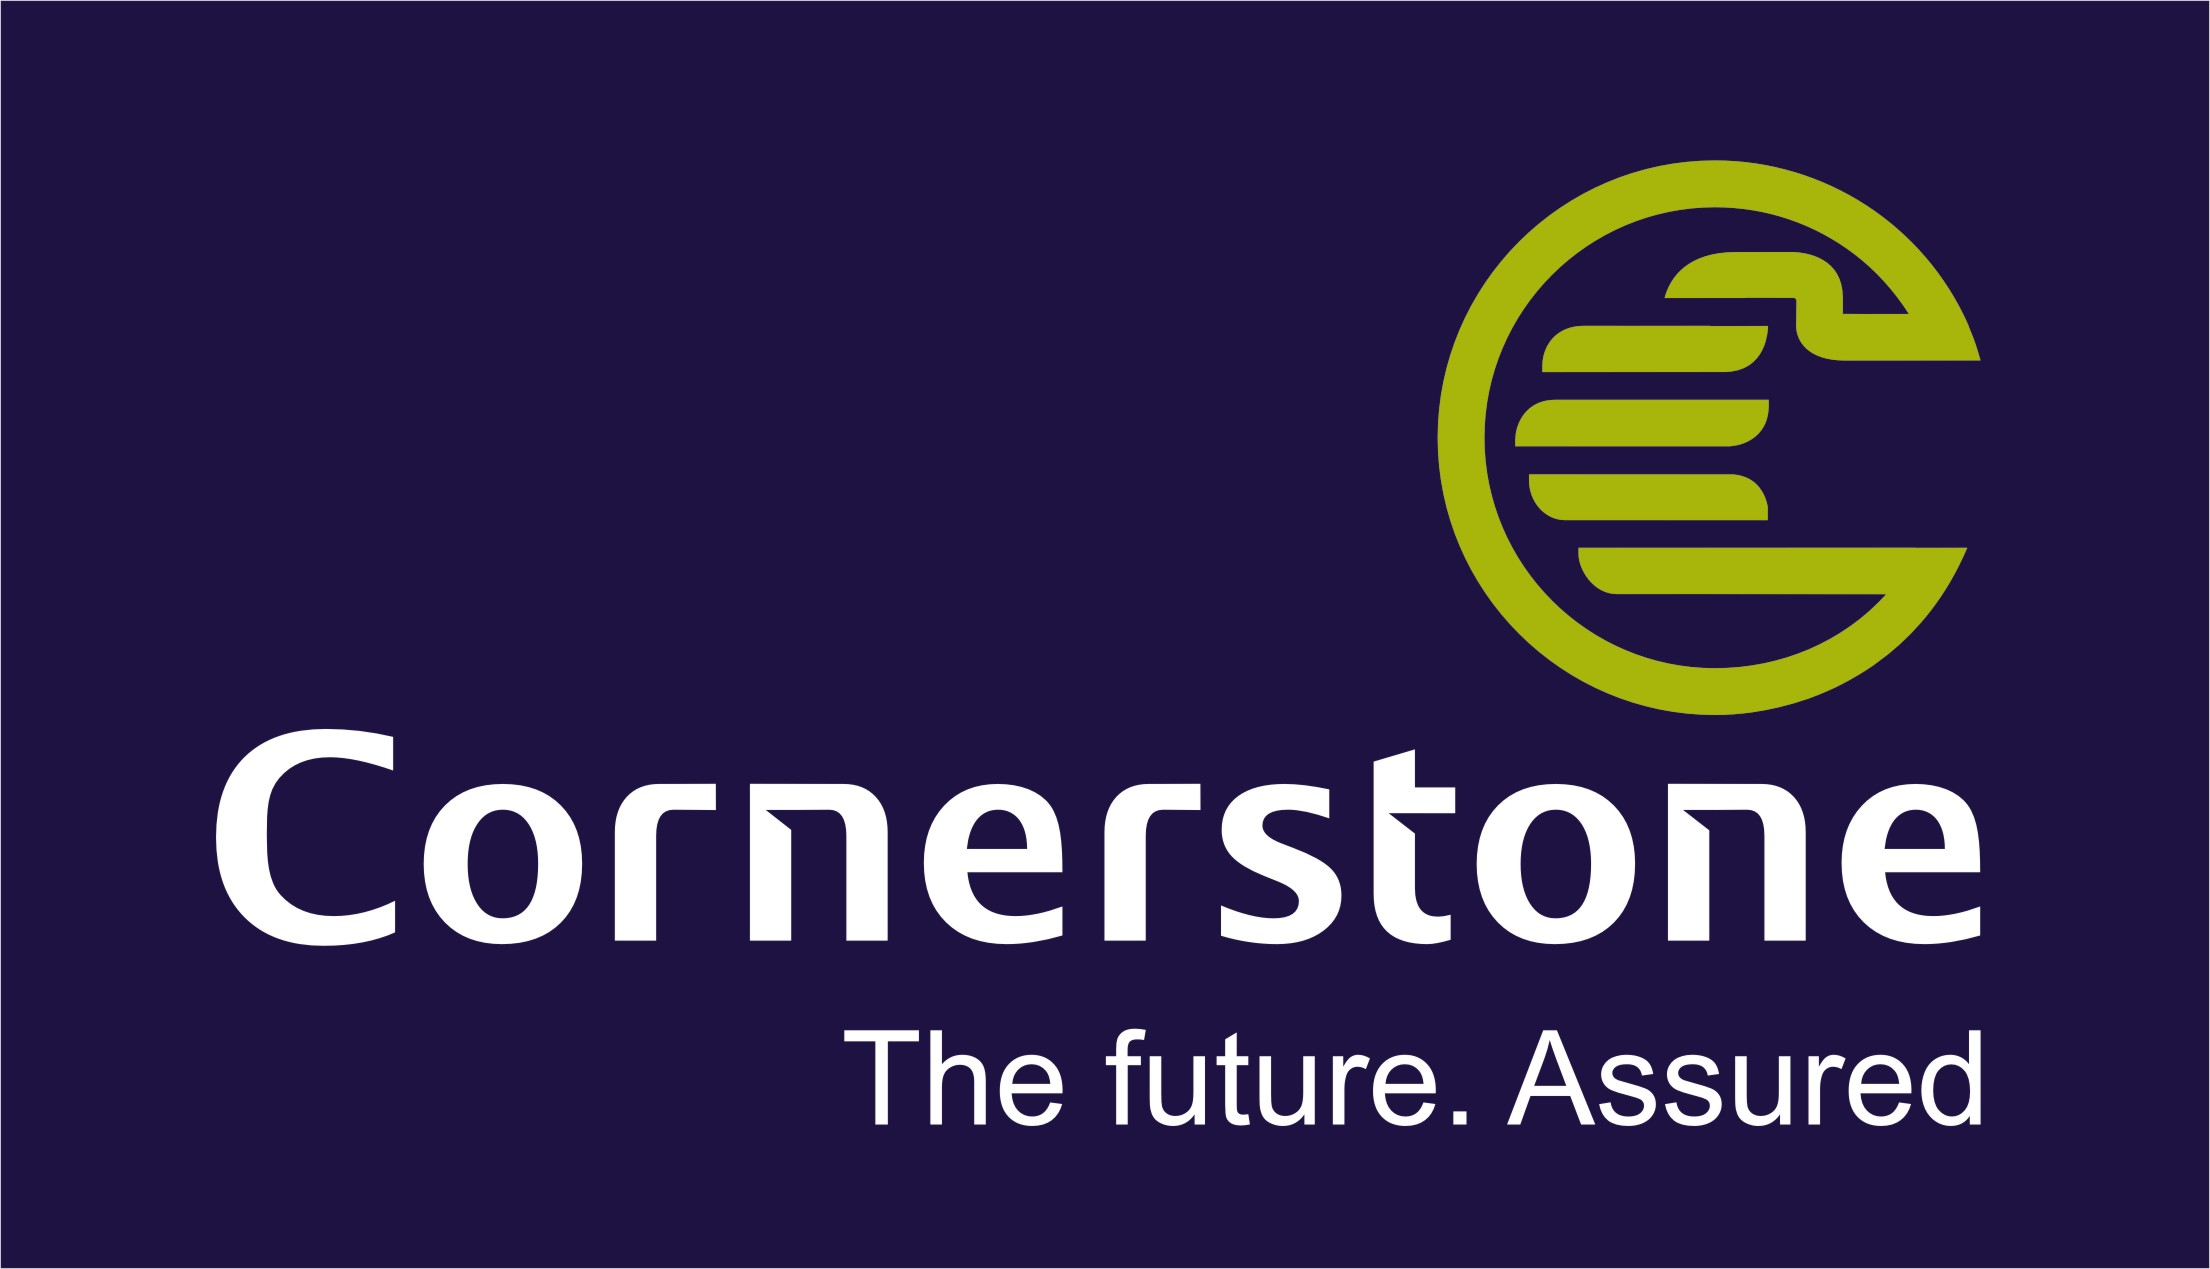 Graduate Executive Financial Planner Job at Cornerstone Insurance Plc